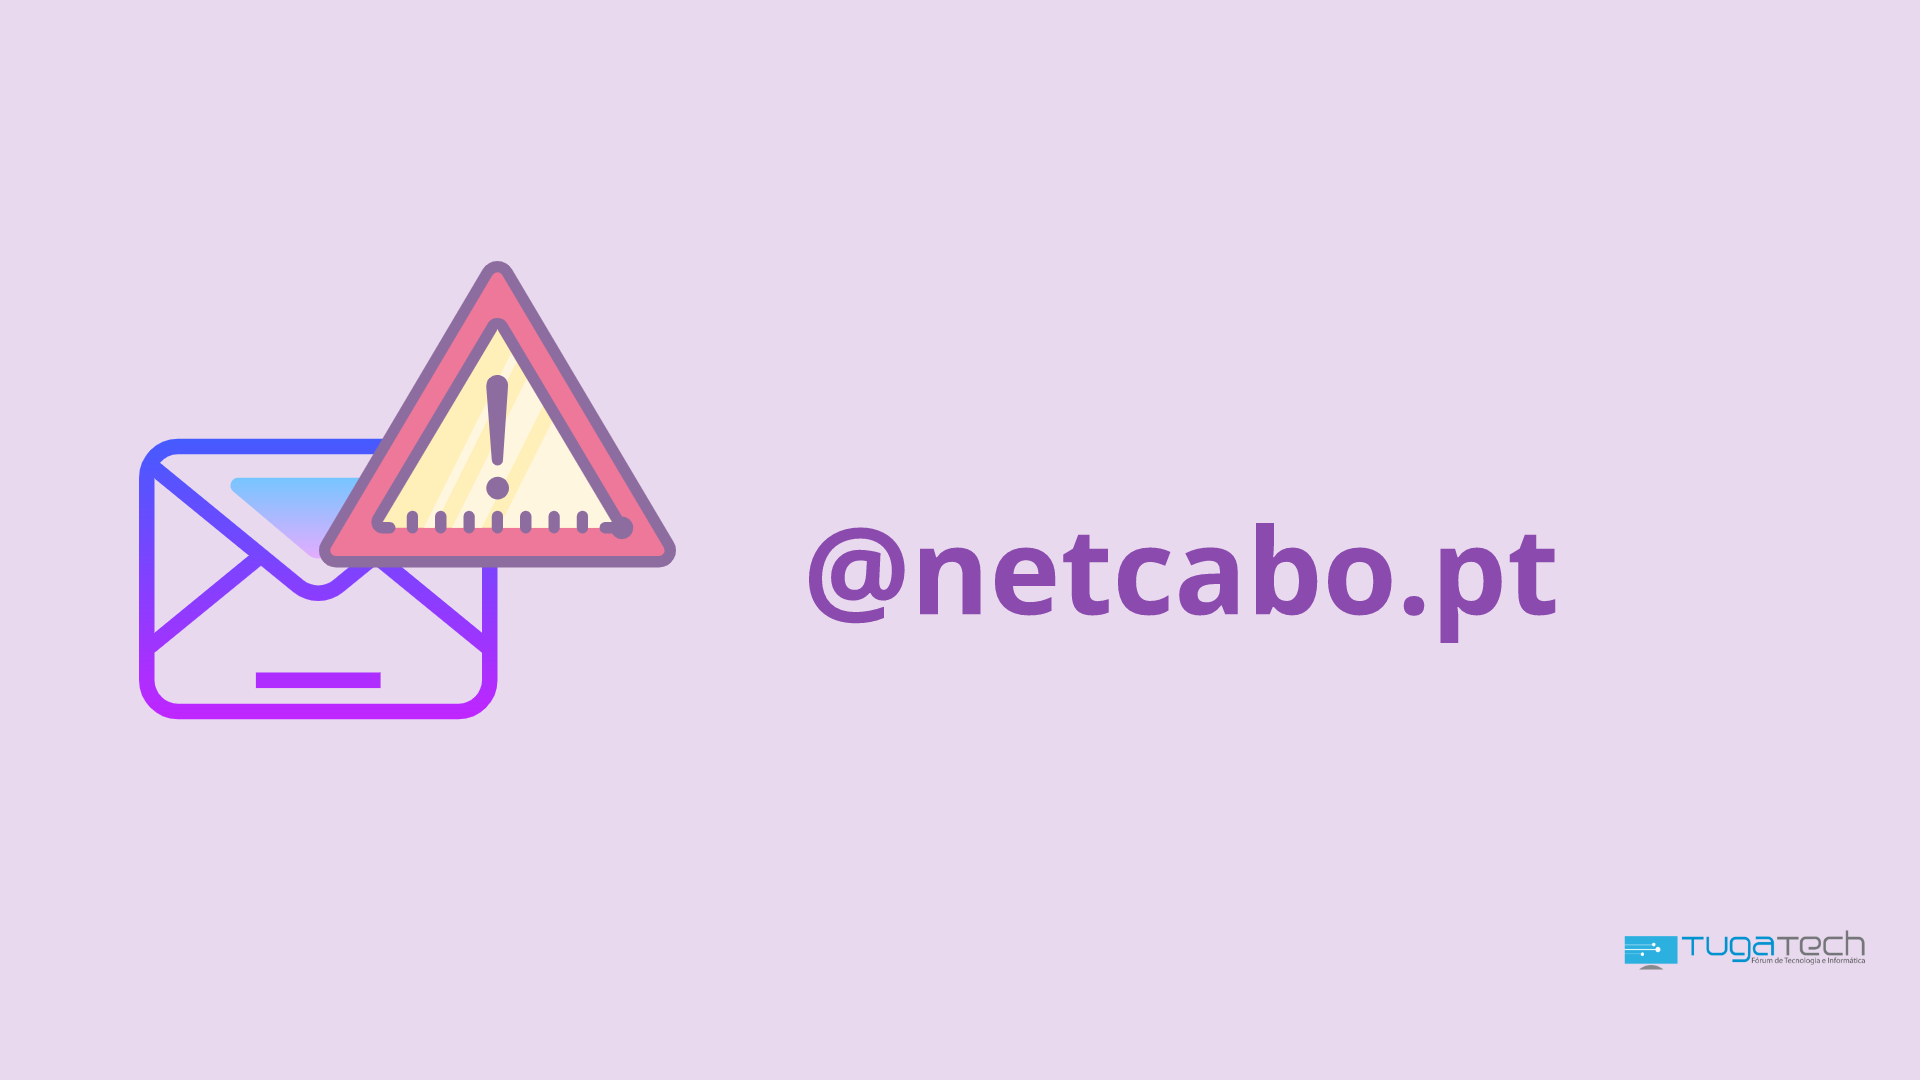 Netcabo emails